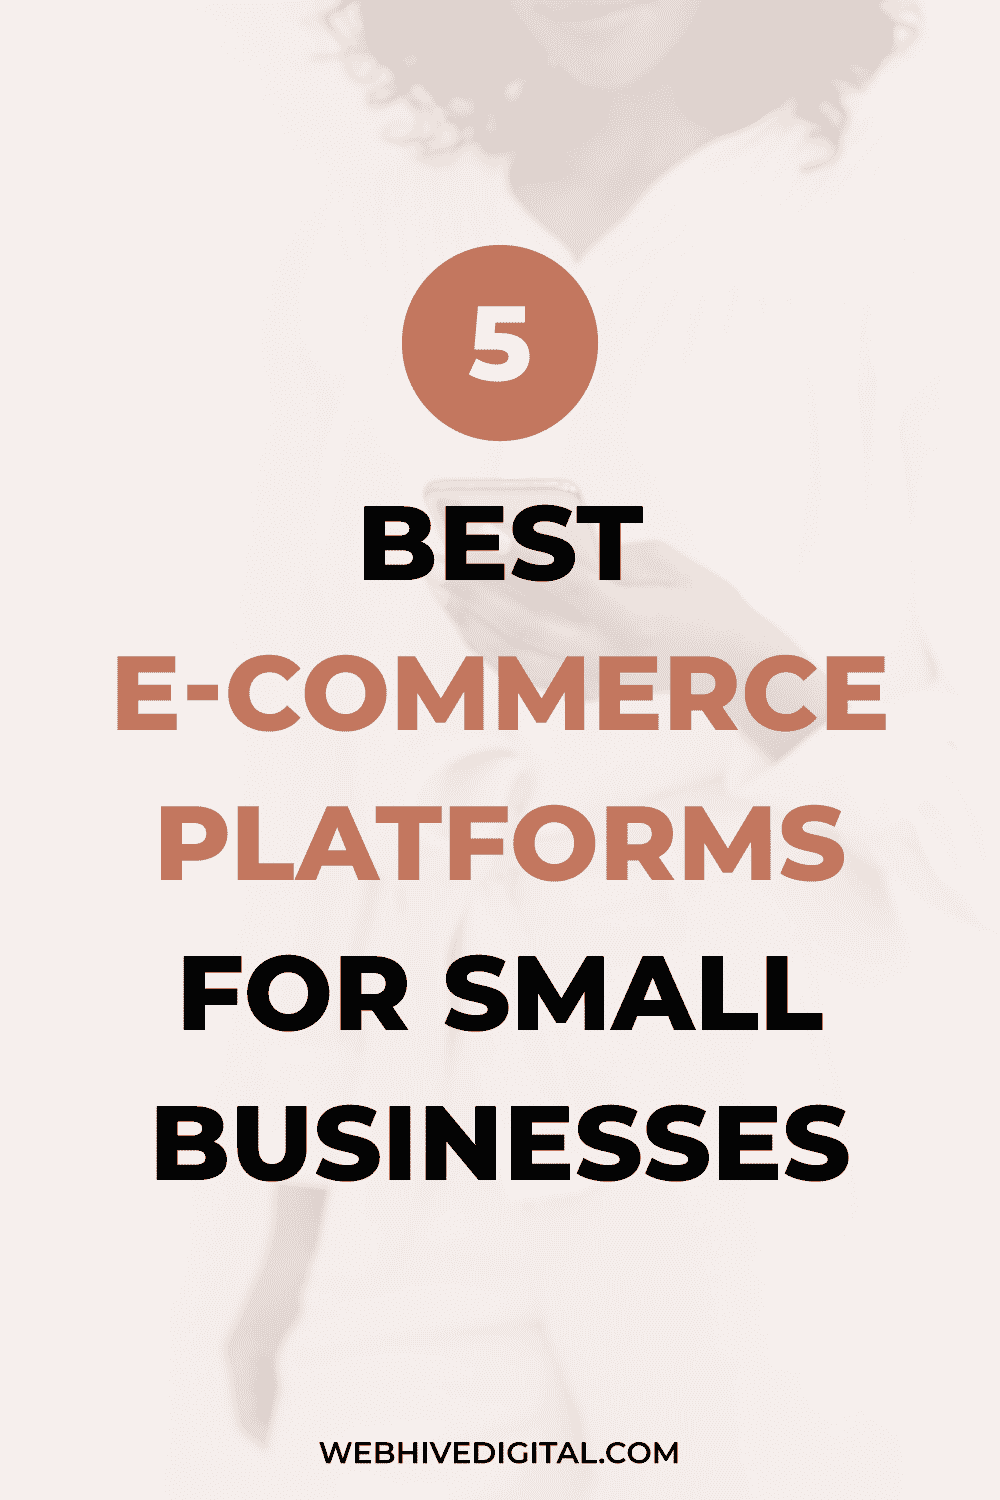 5 Best E-commerce Platforms for Small Businesses | Webhive Digital